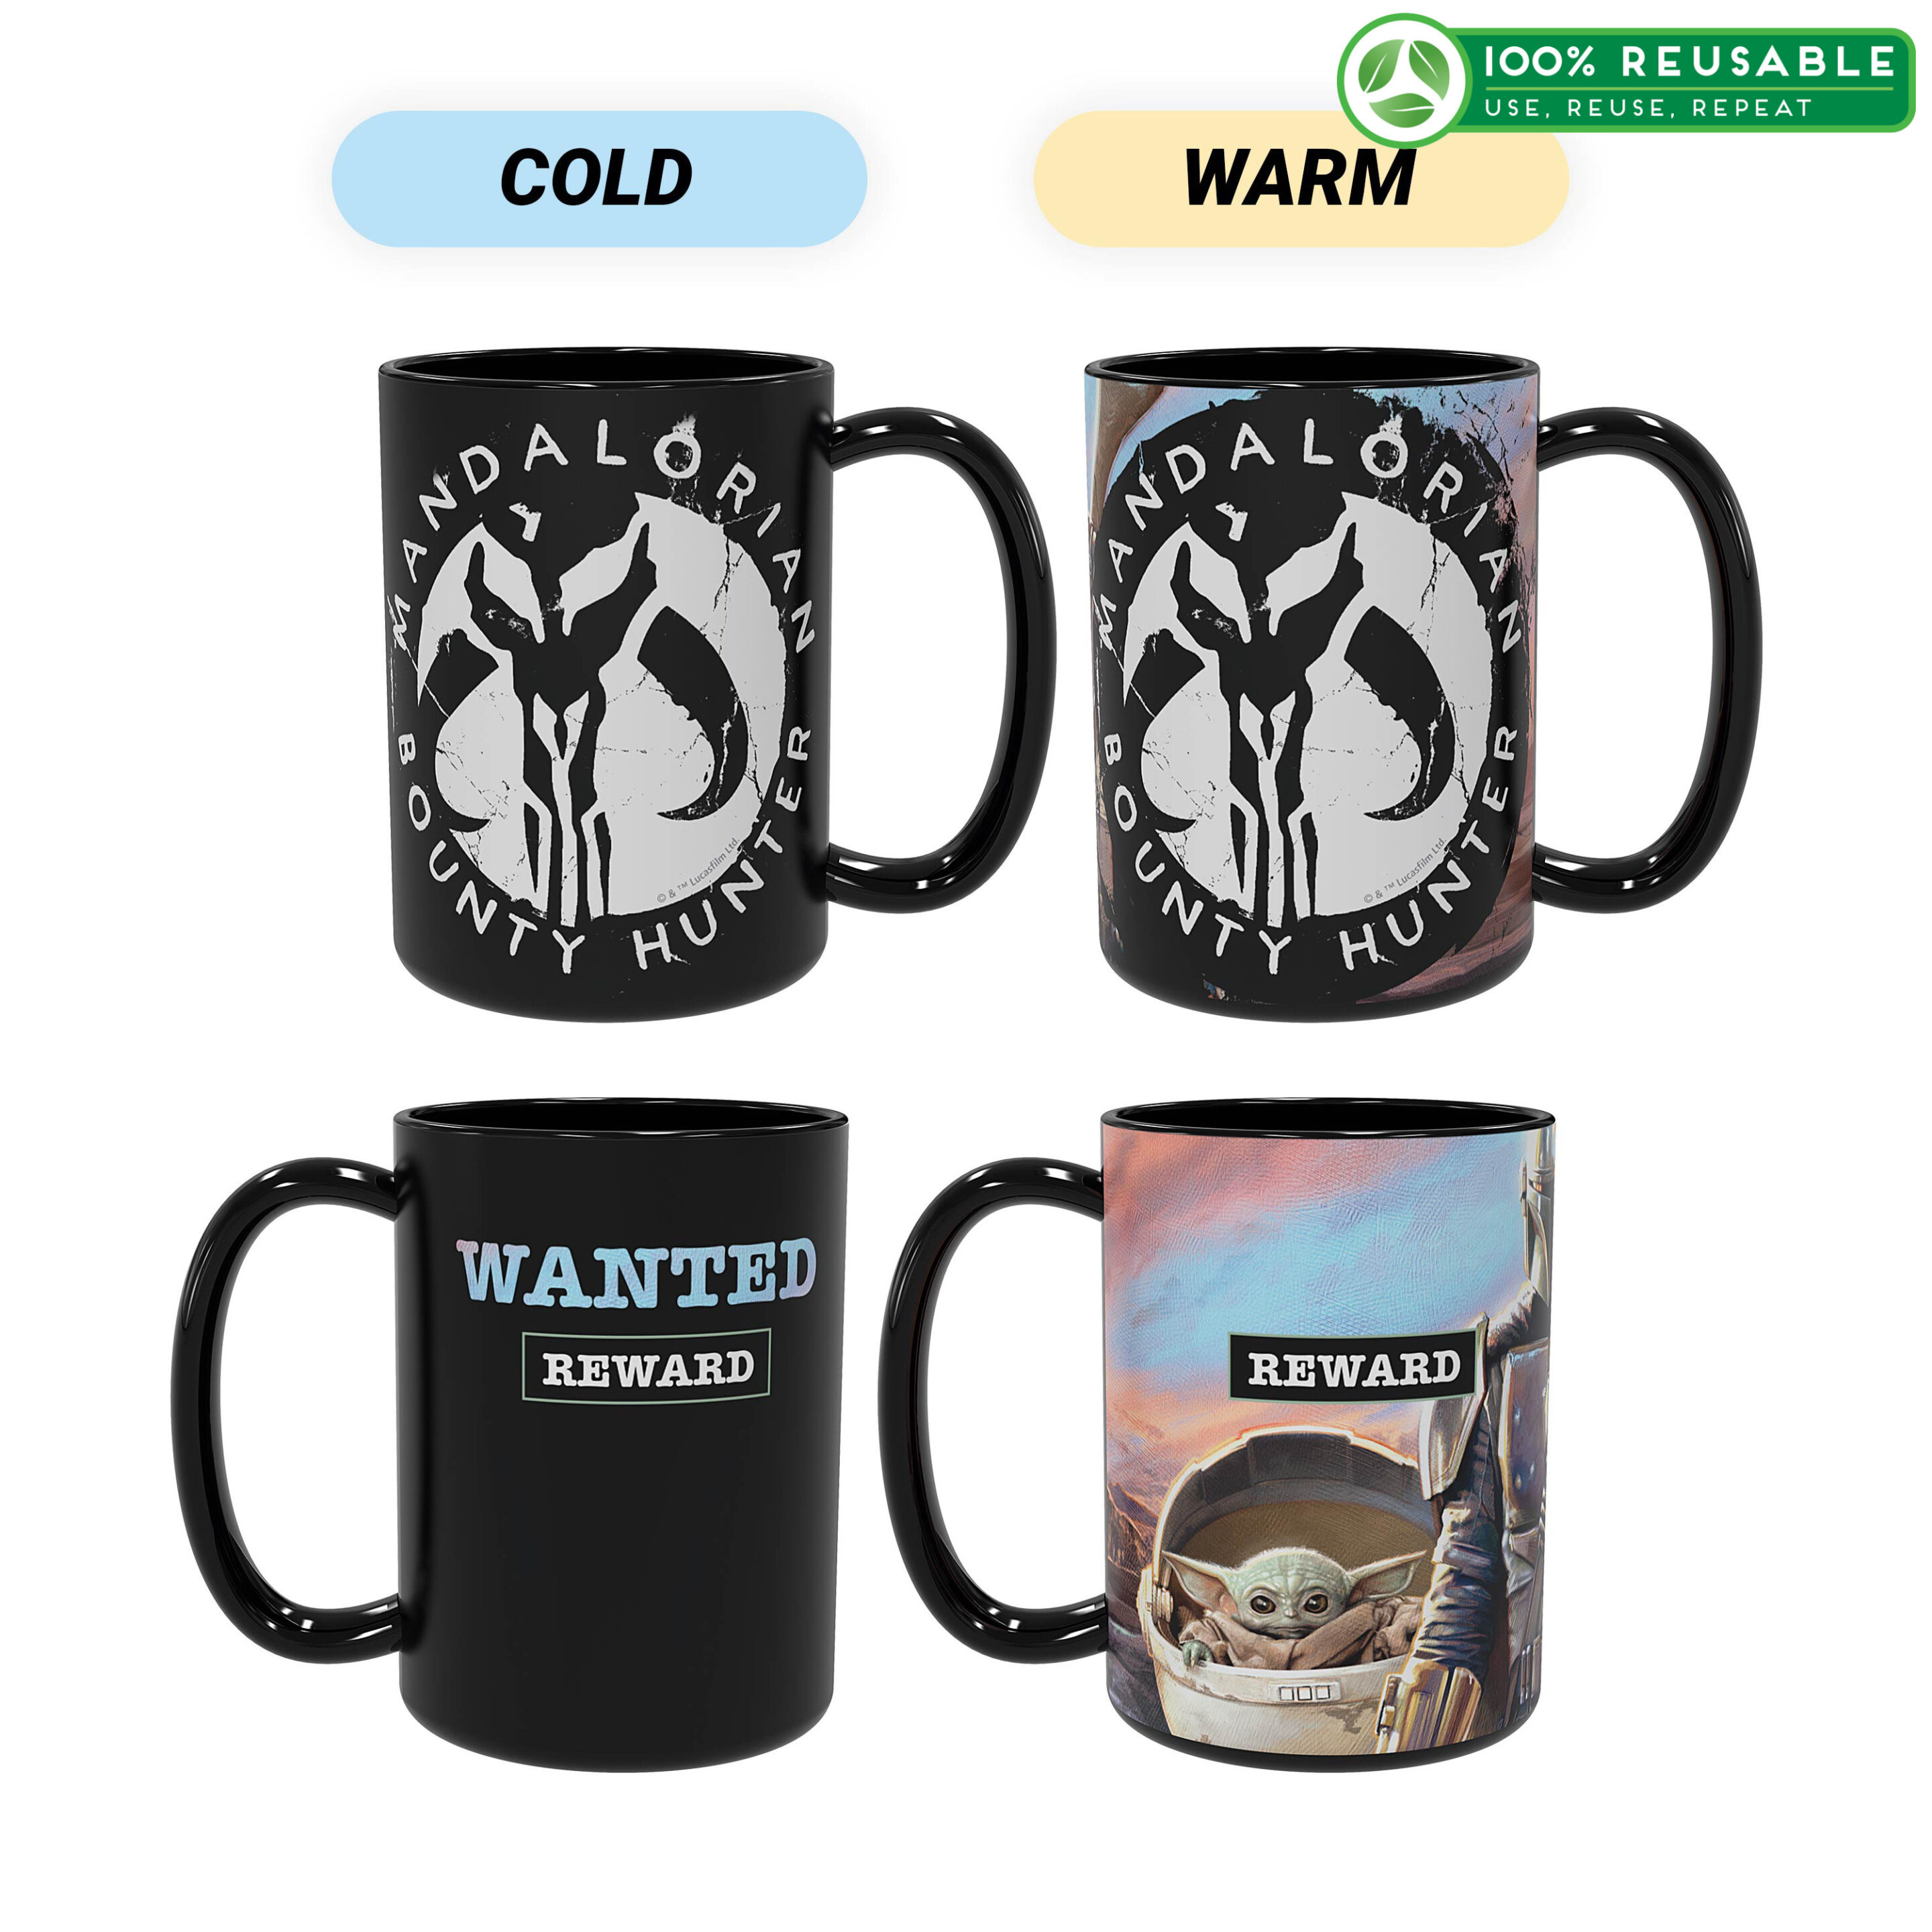 Zak! Star Wars: The Mandalorian Coffee Mug Image